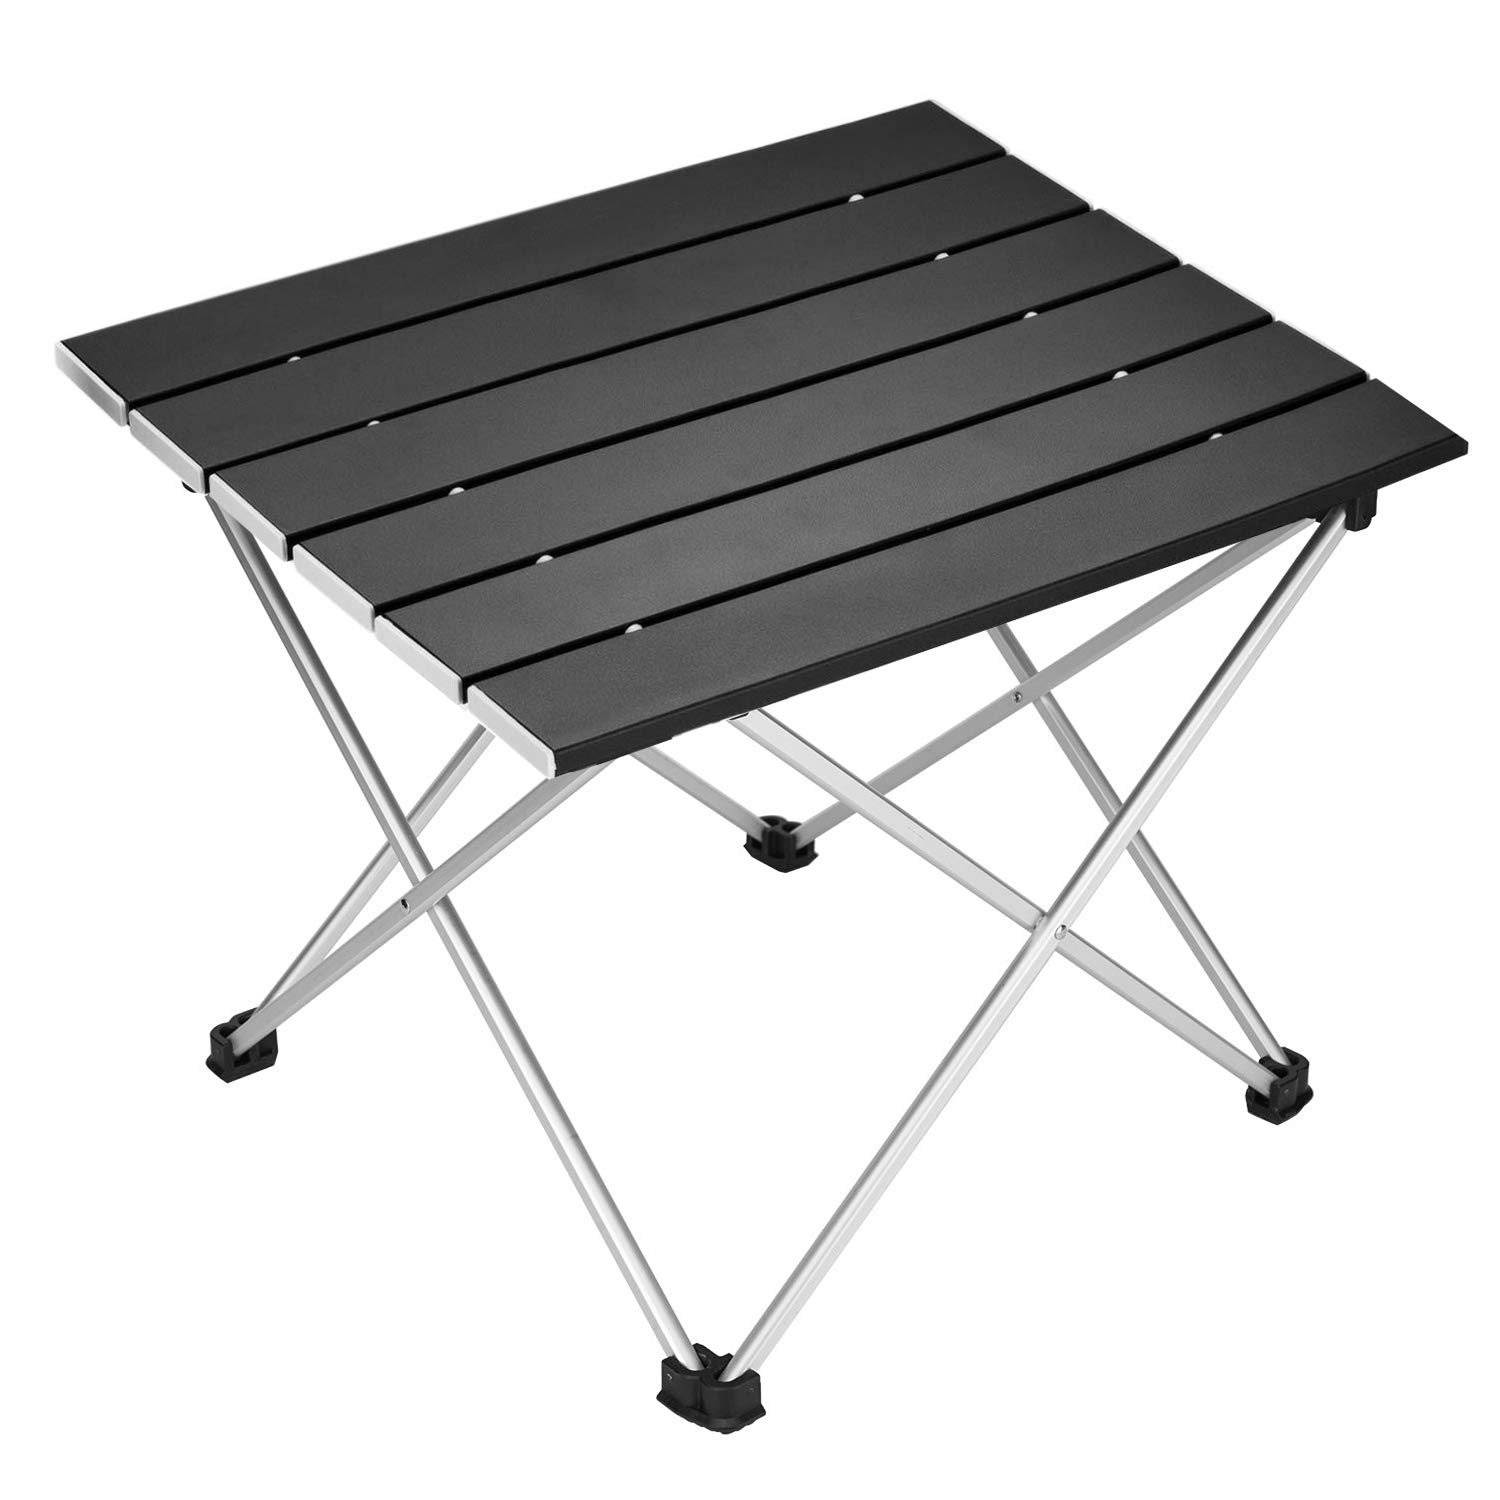 Portable Camping Table,Aluminum Folding Table Ultralight Camp Table with Carry Bag Collapsible Table Top for Picnic,Cooking,Camping,Beach,Festival by Souyos